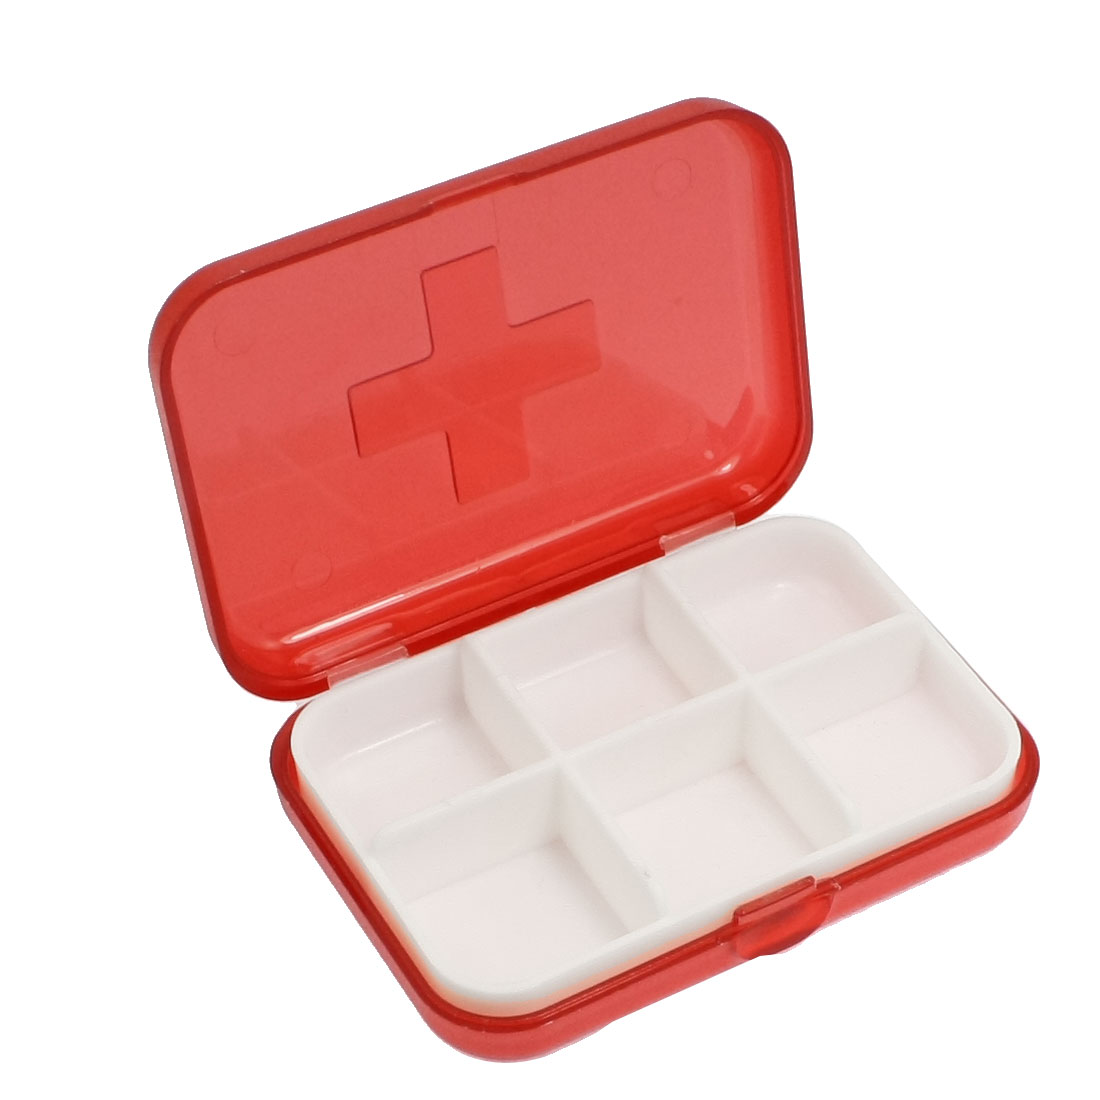 Cross Marked 6 Rooms Medicine Pill Storage Case Box Clear Red